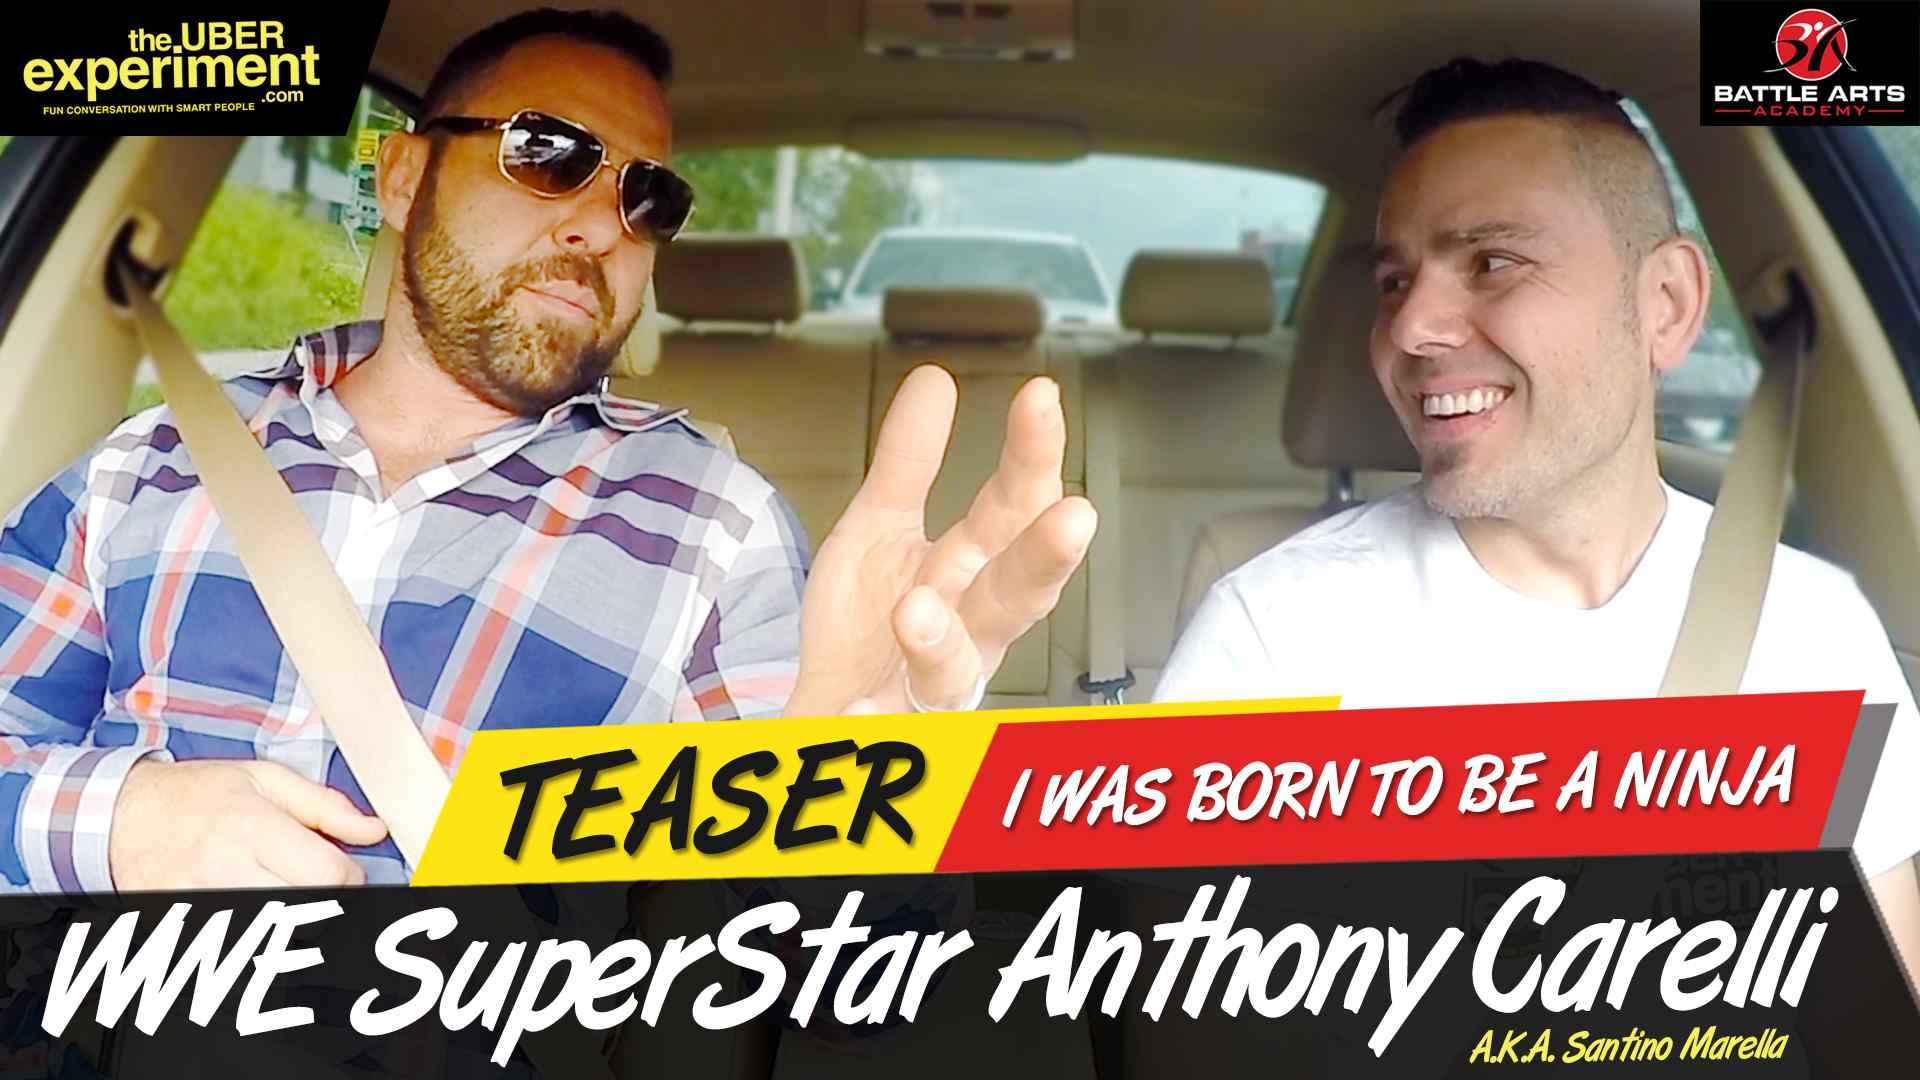 BORN TO BE A NINJA - WWE Superstar Wrestler Anthony Carelli (Santino Marella) on The Uber Experiment